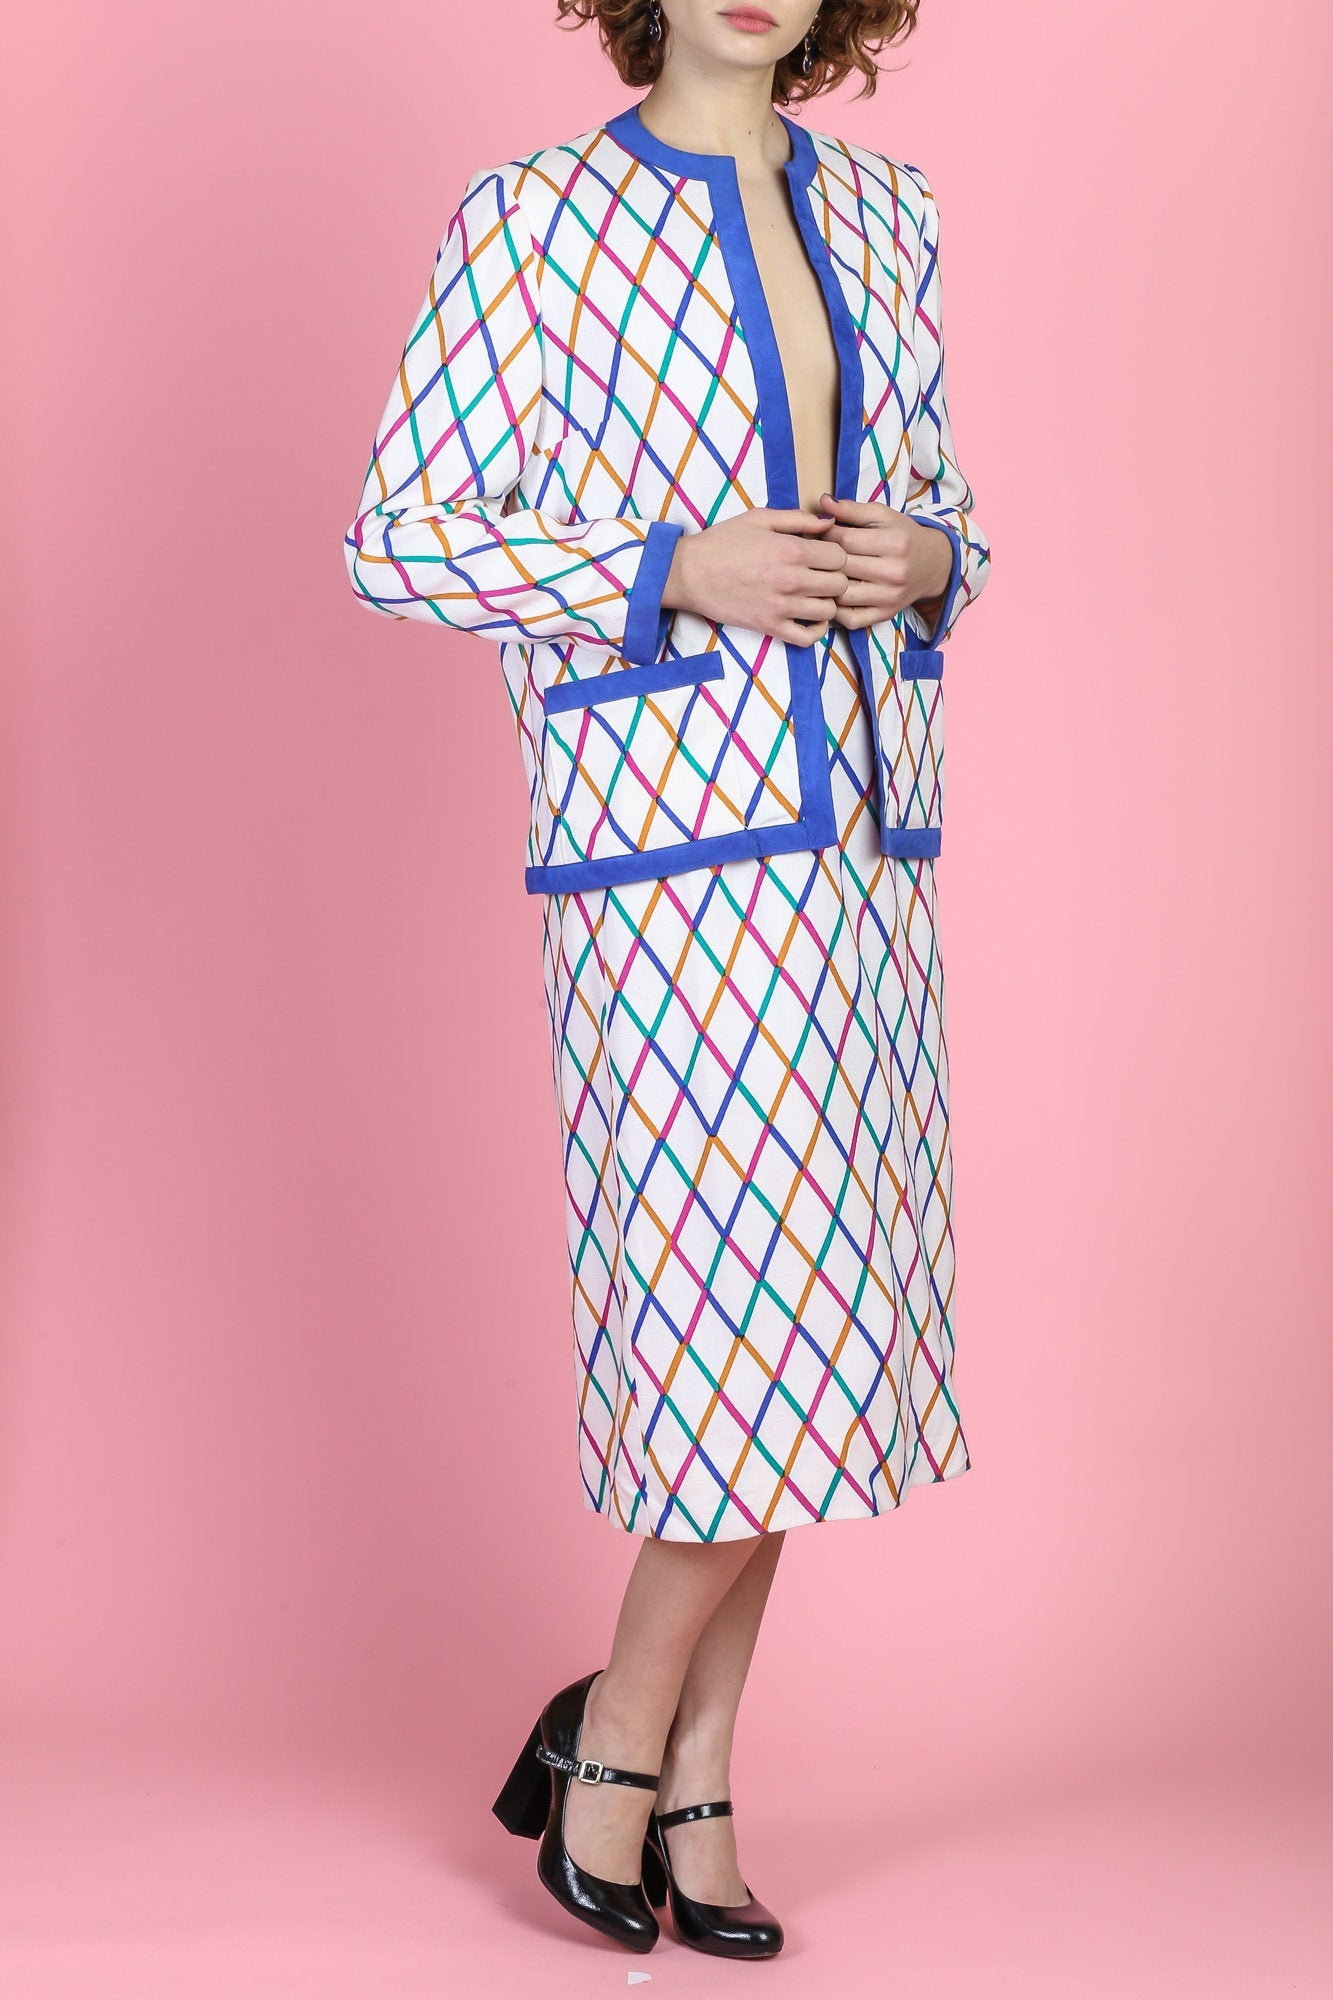 Vintage 80s Diamond Rainbow Skirt Suit Set - Large